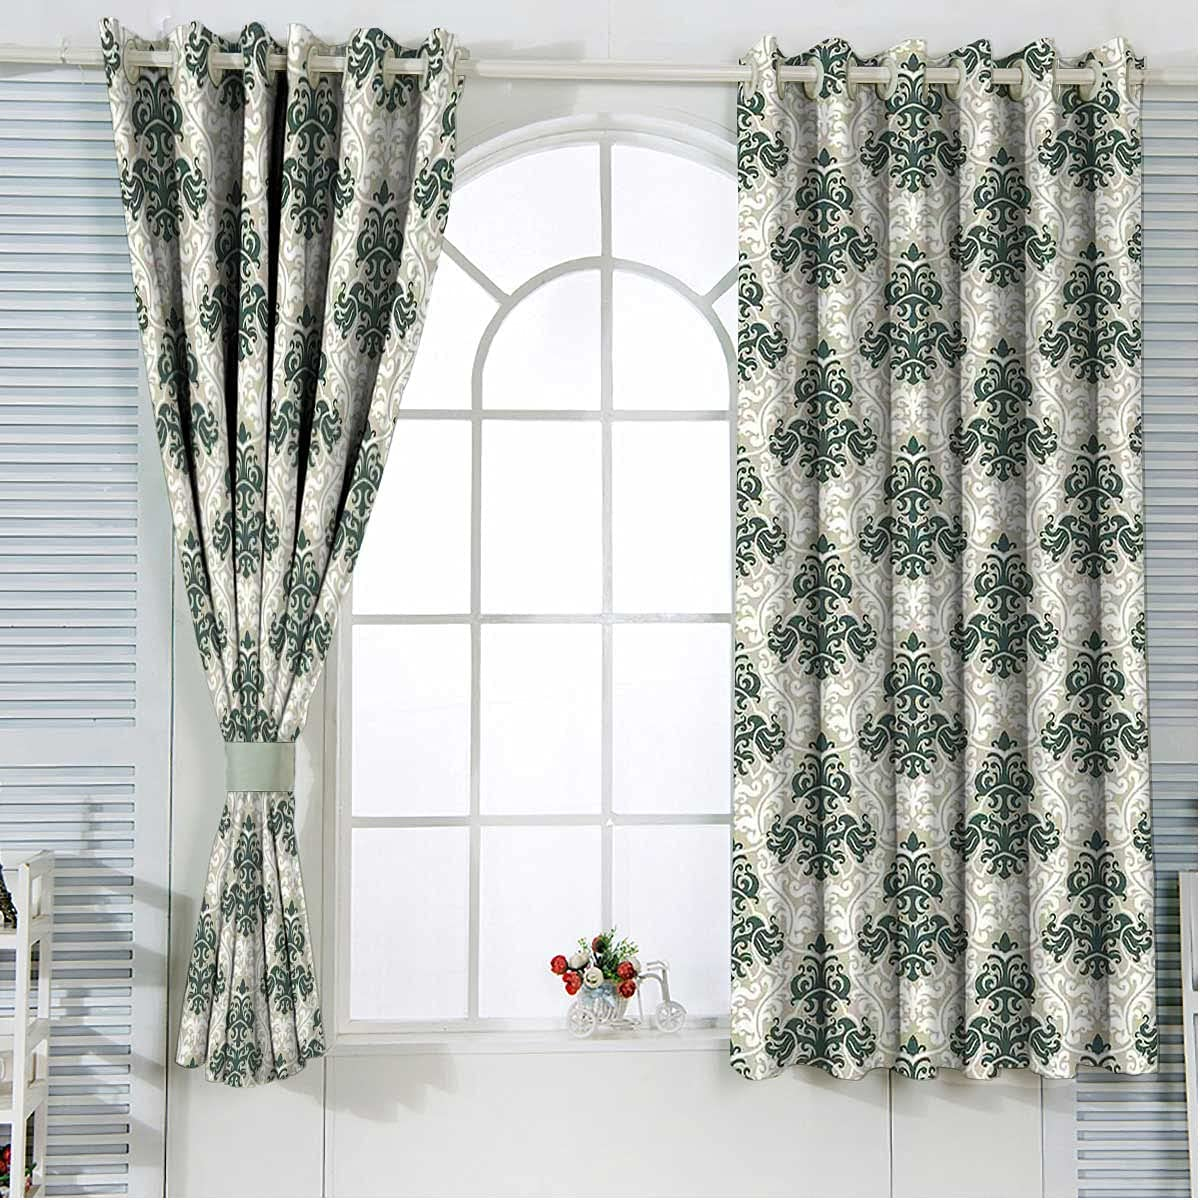 Black Curtains for Bedroom Max 52% OFF 63 Length shopping Leaf Floral Inches Foliage